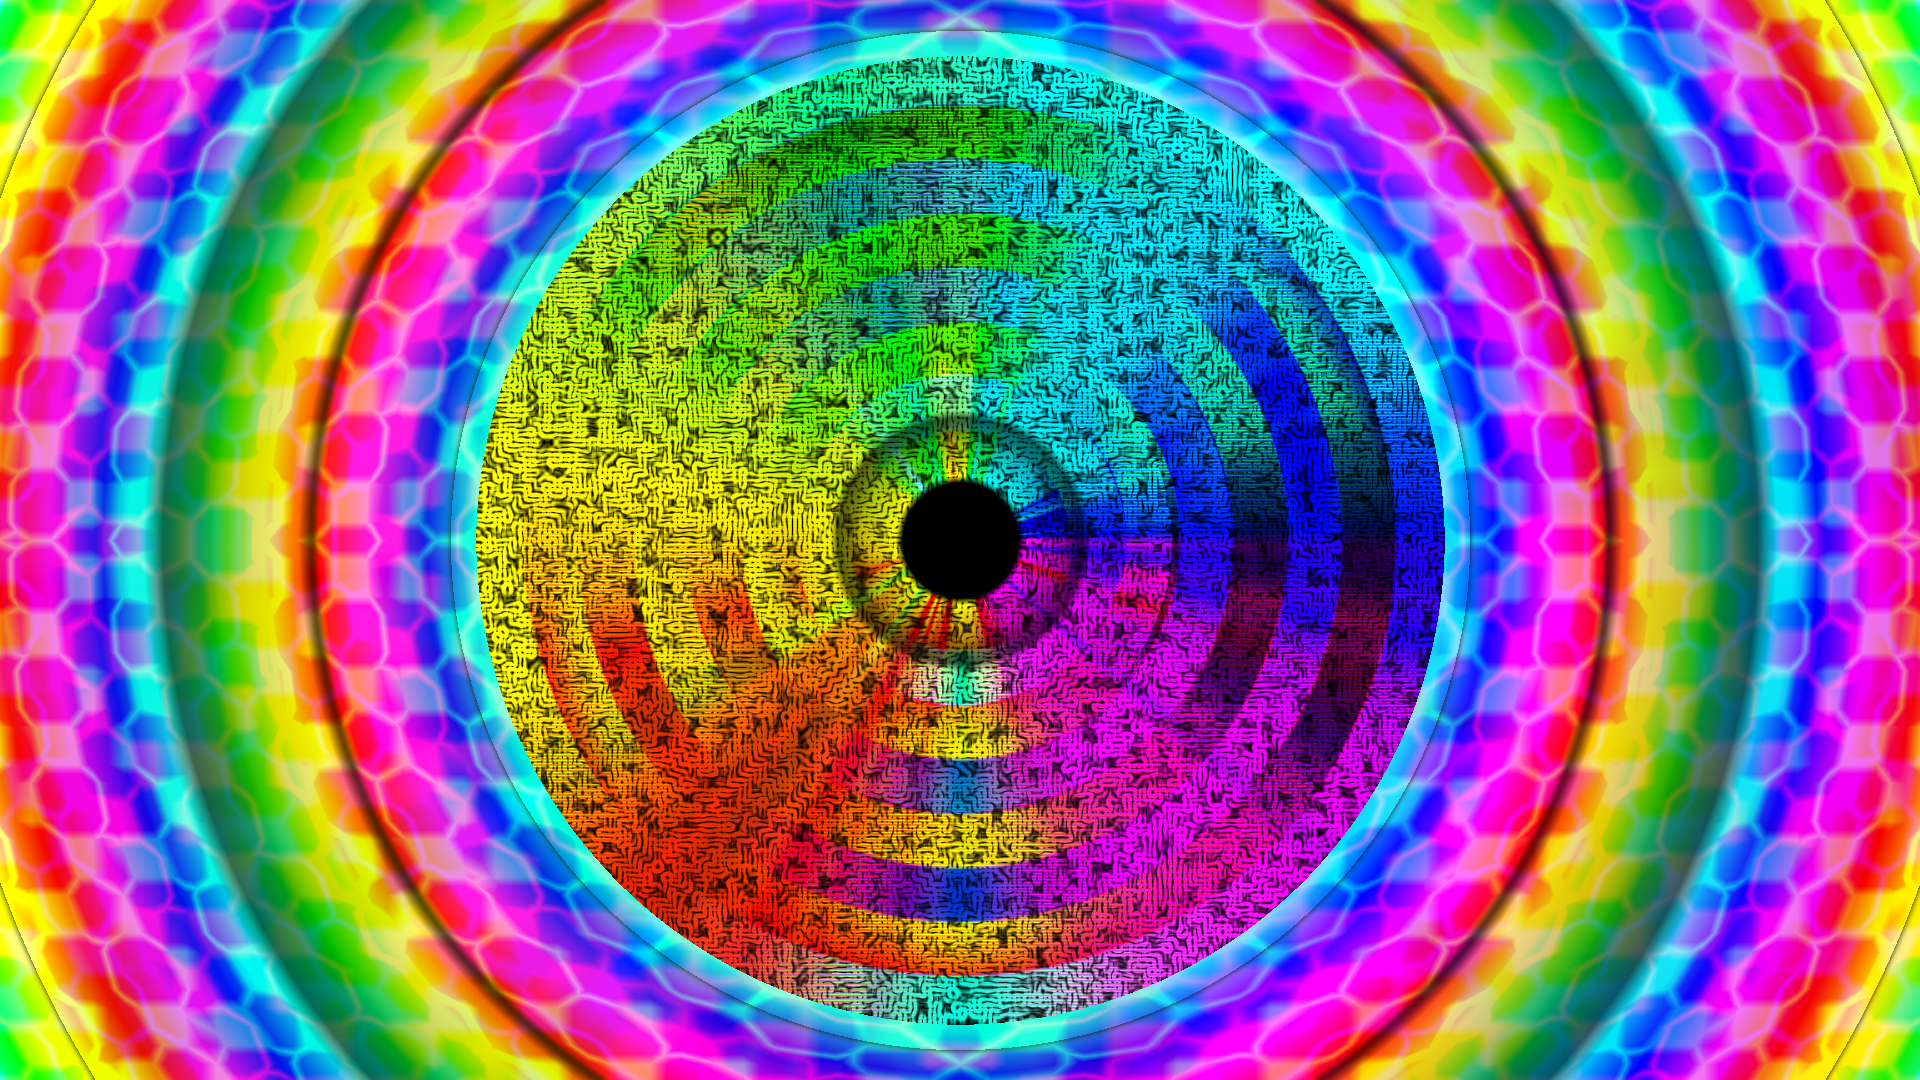 Cool Backgrounds : Trippy & Psychedelic Wallpapers